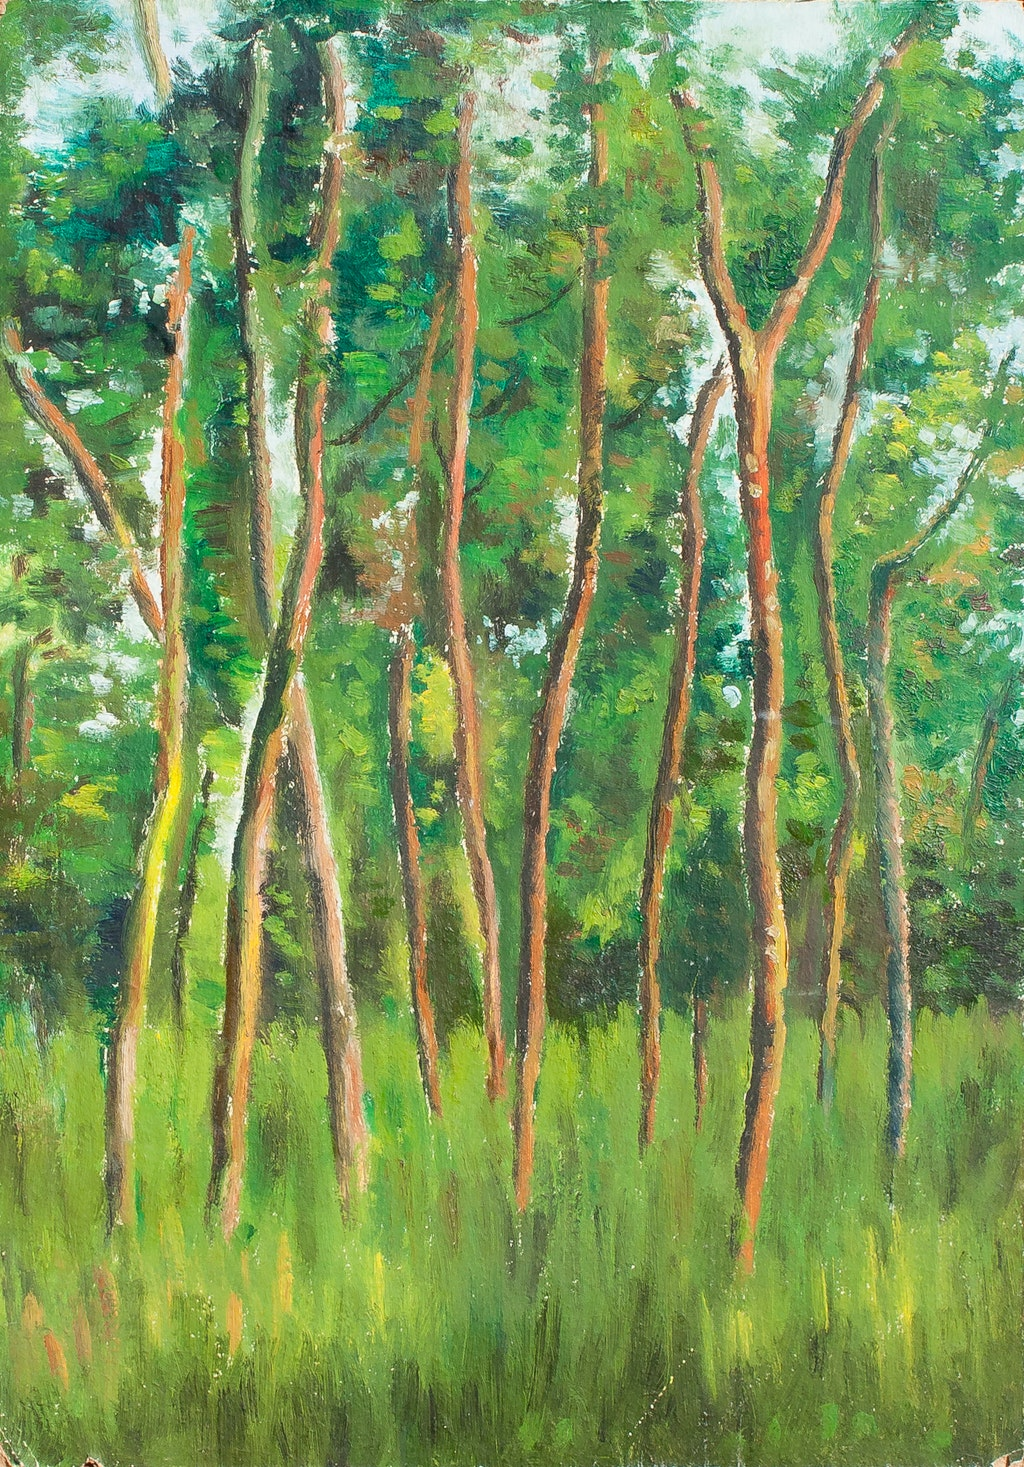 """Painting """"In the woods"""", painted by Elena Birkenwald in 1982"""